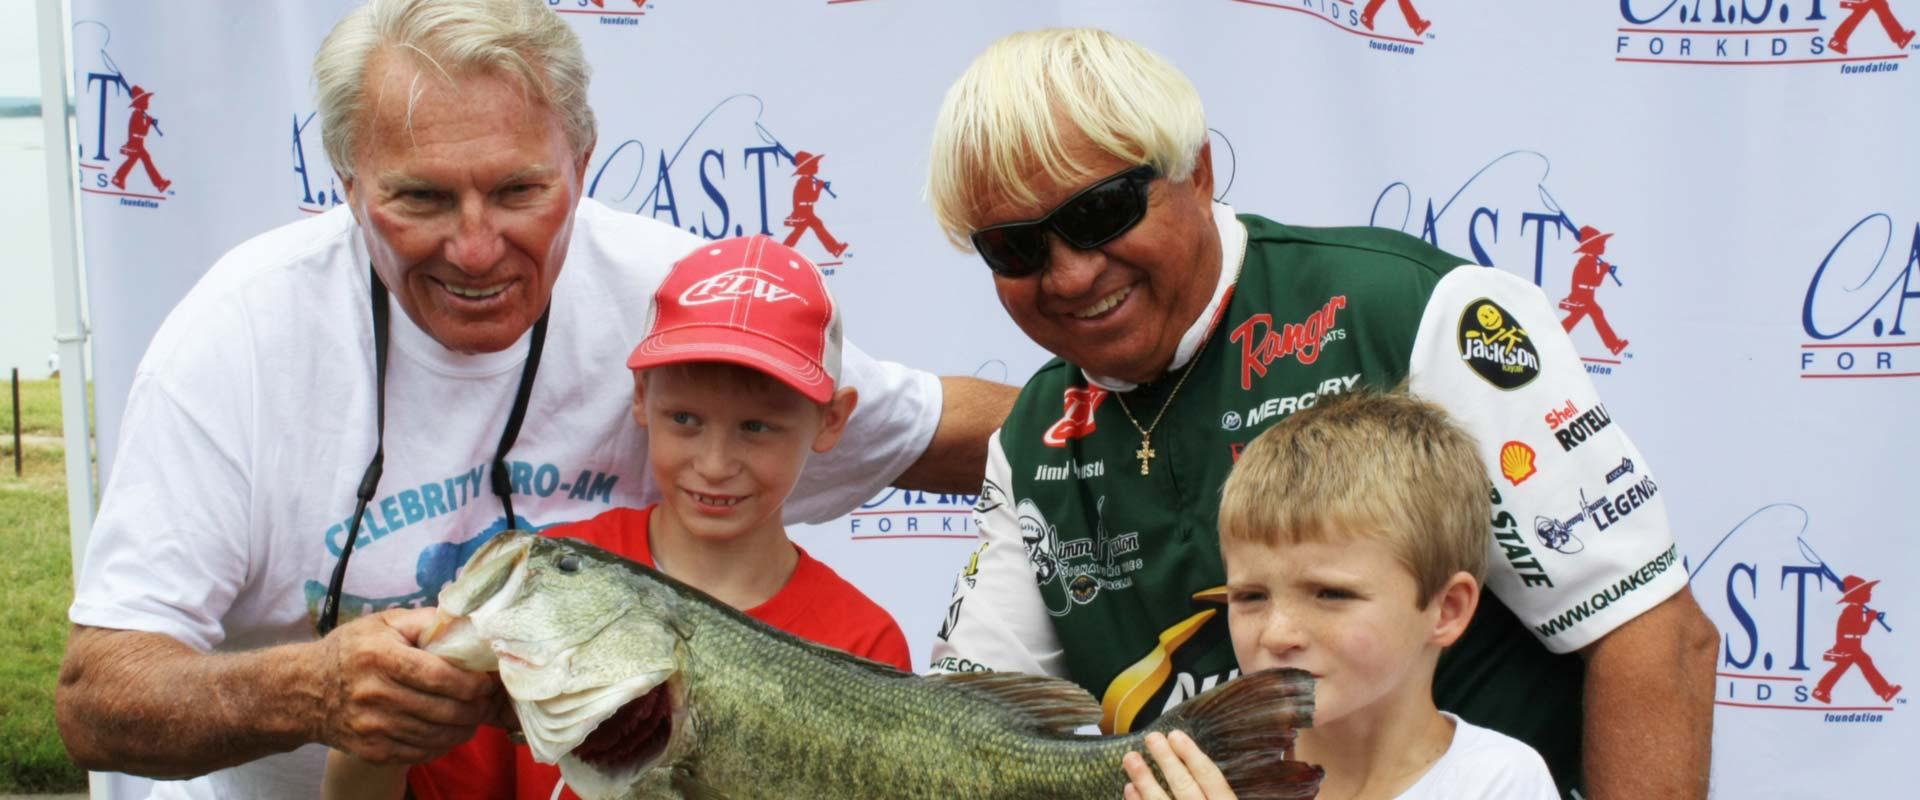 CAST for Kids Foundation   Fishing Charity for Kids